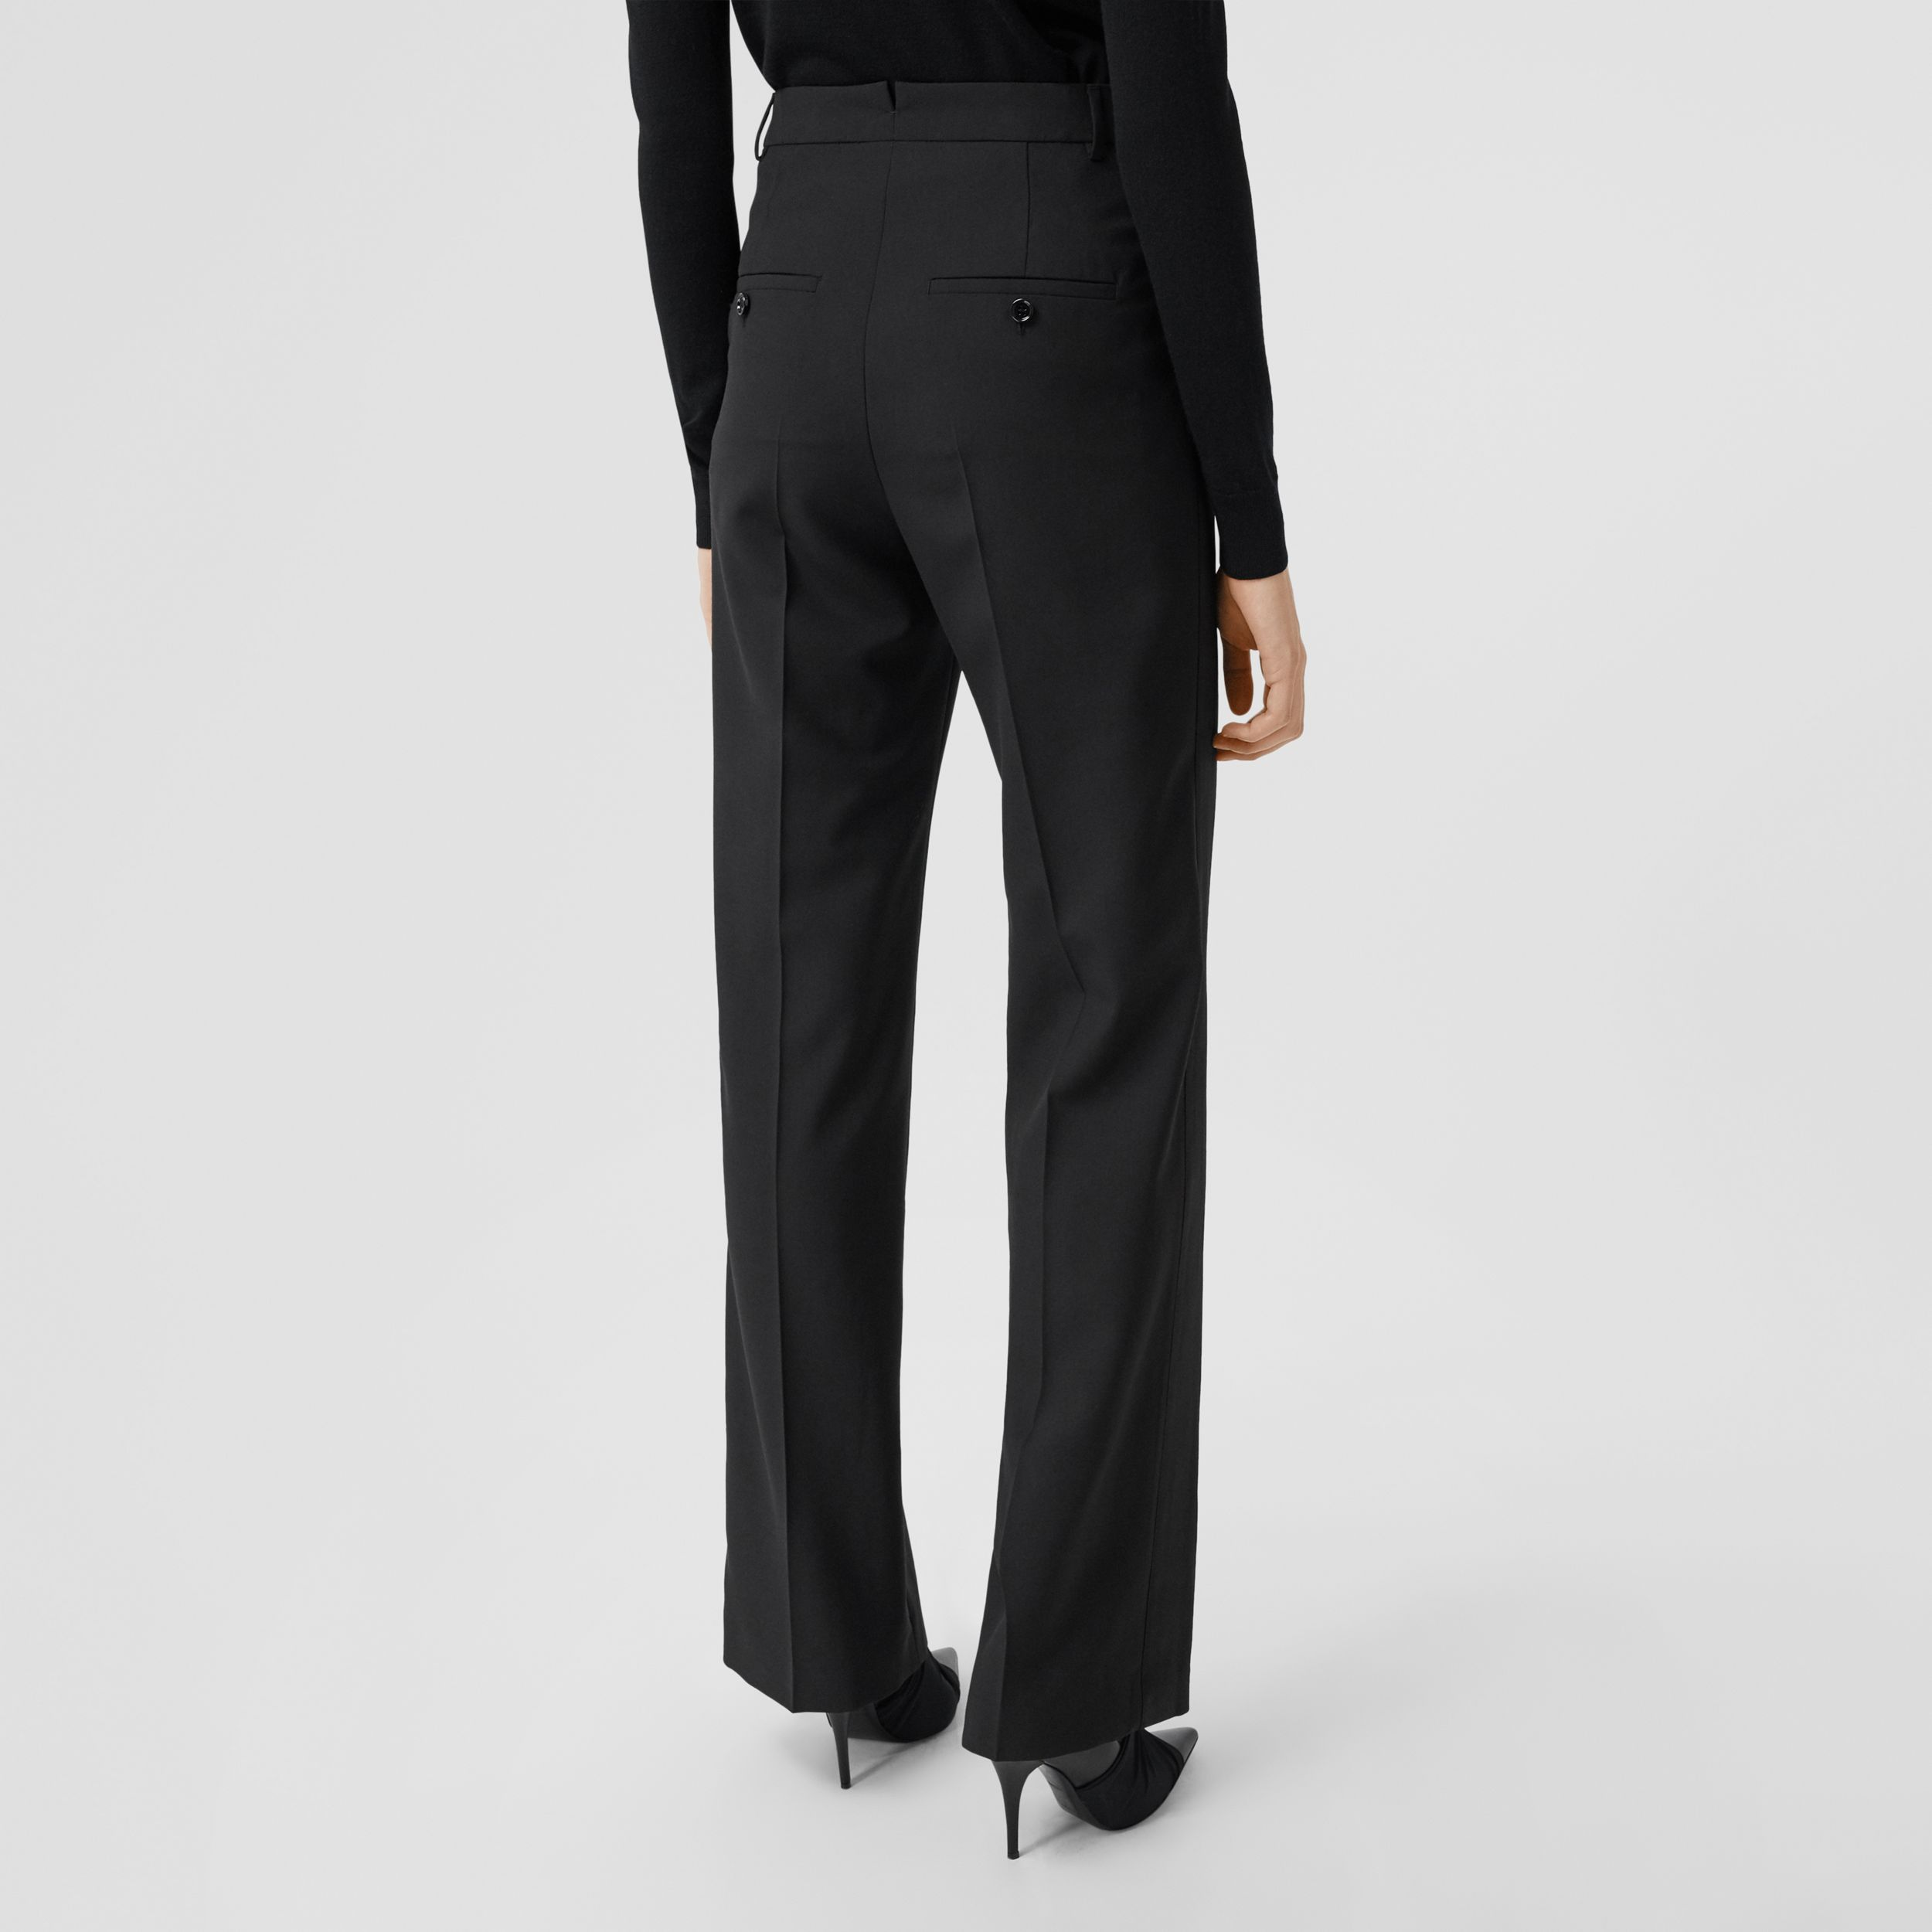 Silk Satin Trim Tumbled Wool Tailored Trousers in Black - Women | Burberry - 3